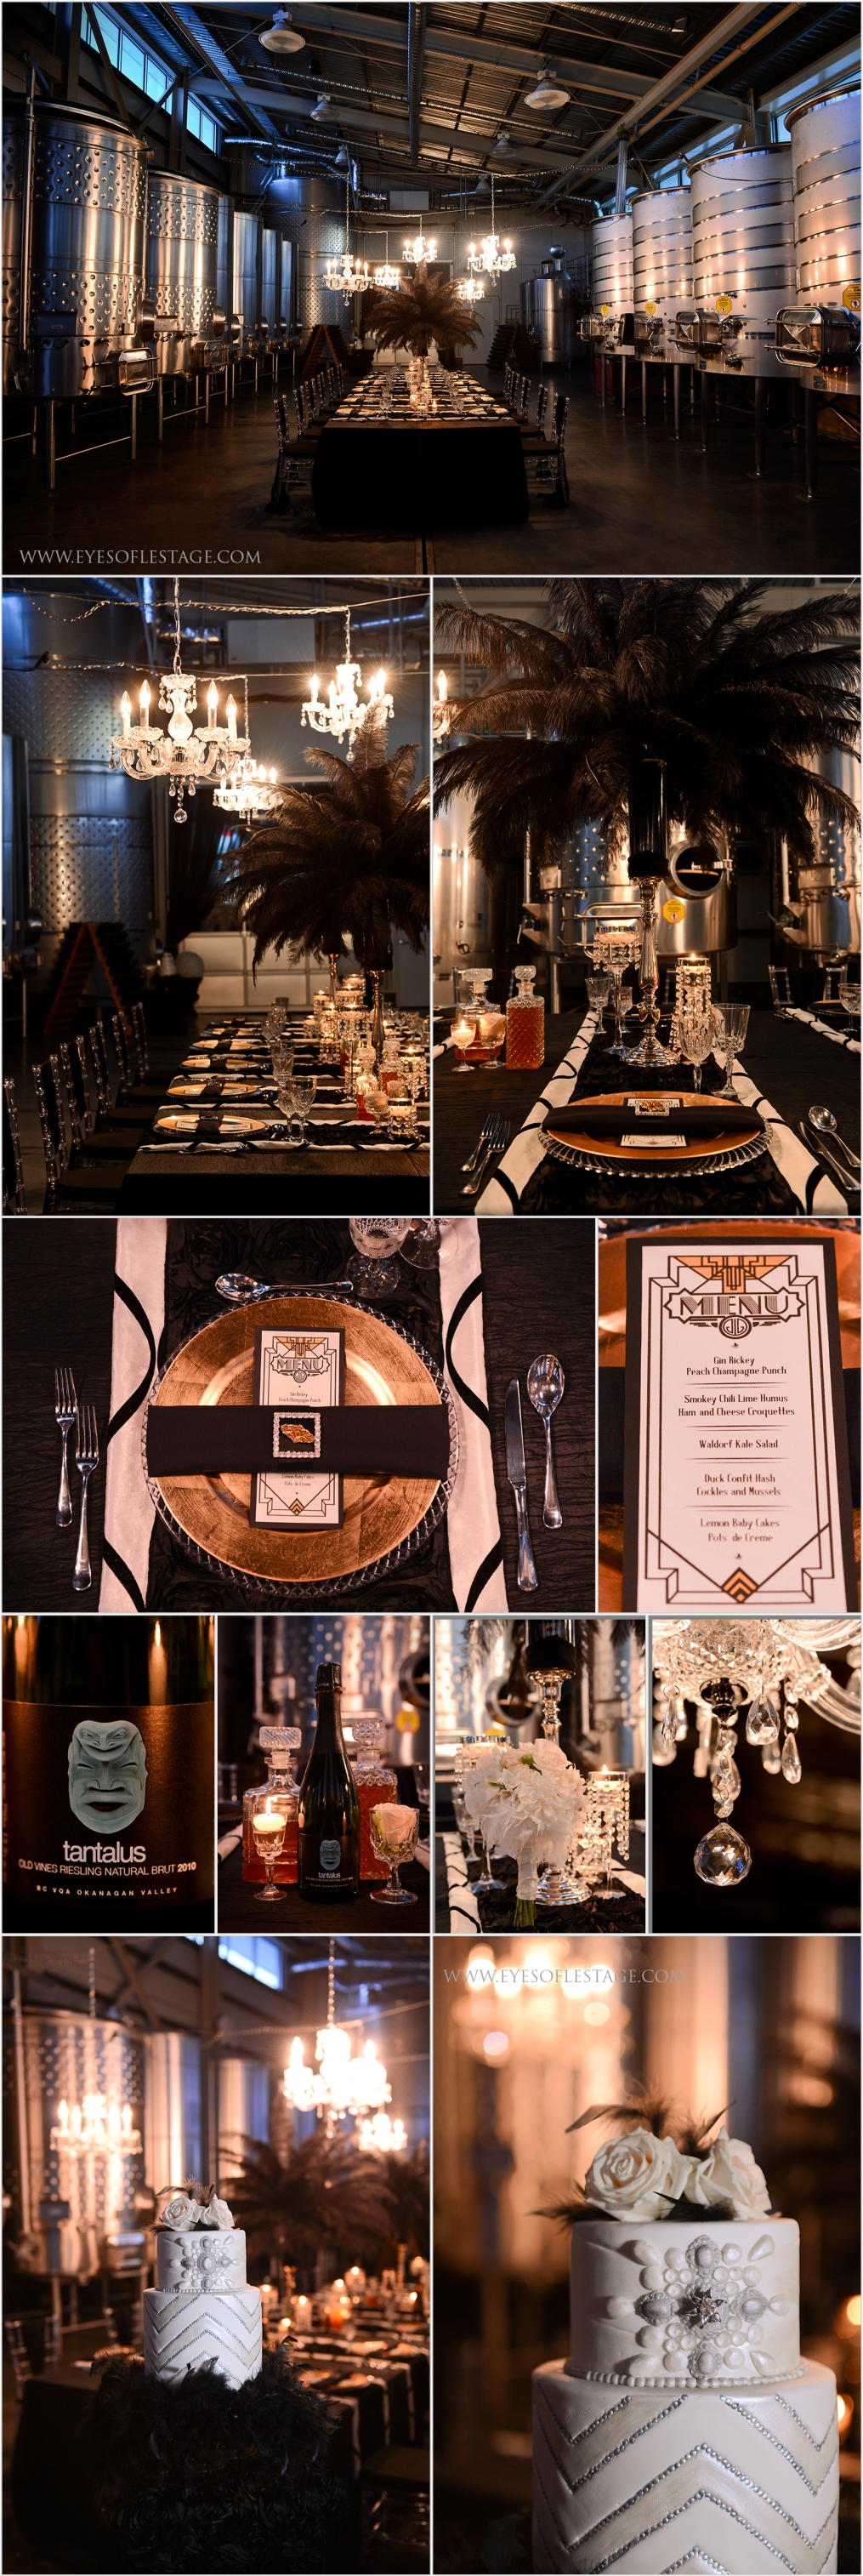 Tantalus Winery Private Reception Venue, Decor, Floral and Stationary - Stage Right Ect. Wedding Cake by Whisk Cake Company - Eyes of Le Stage Photography